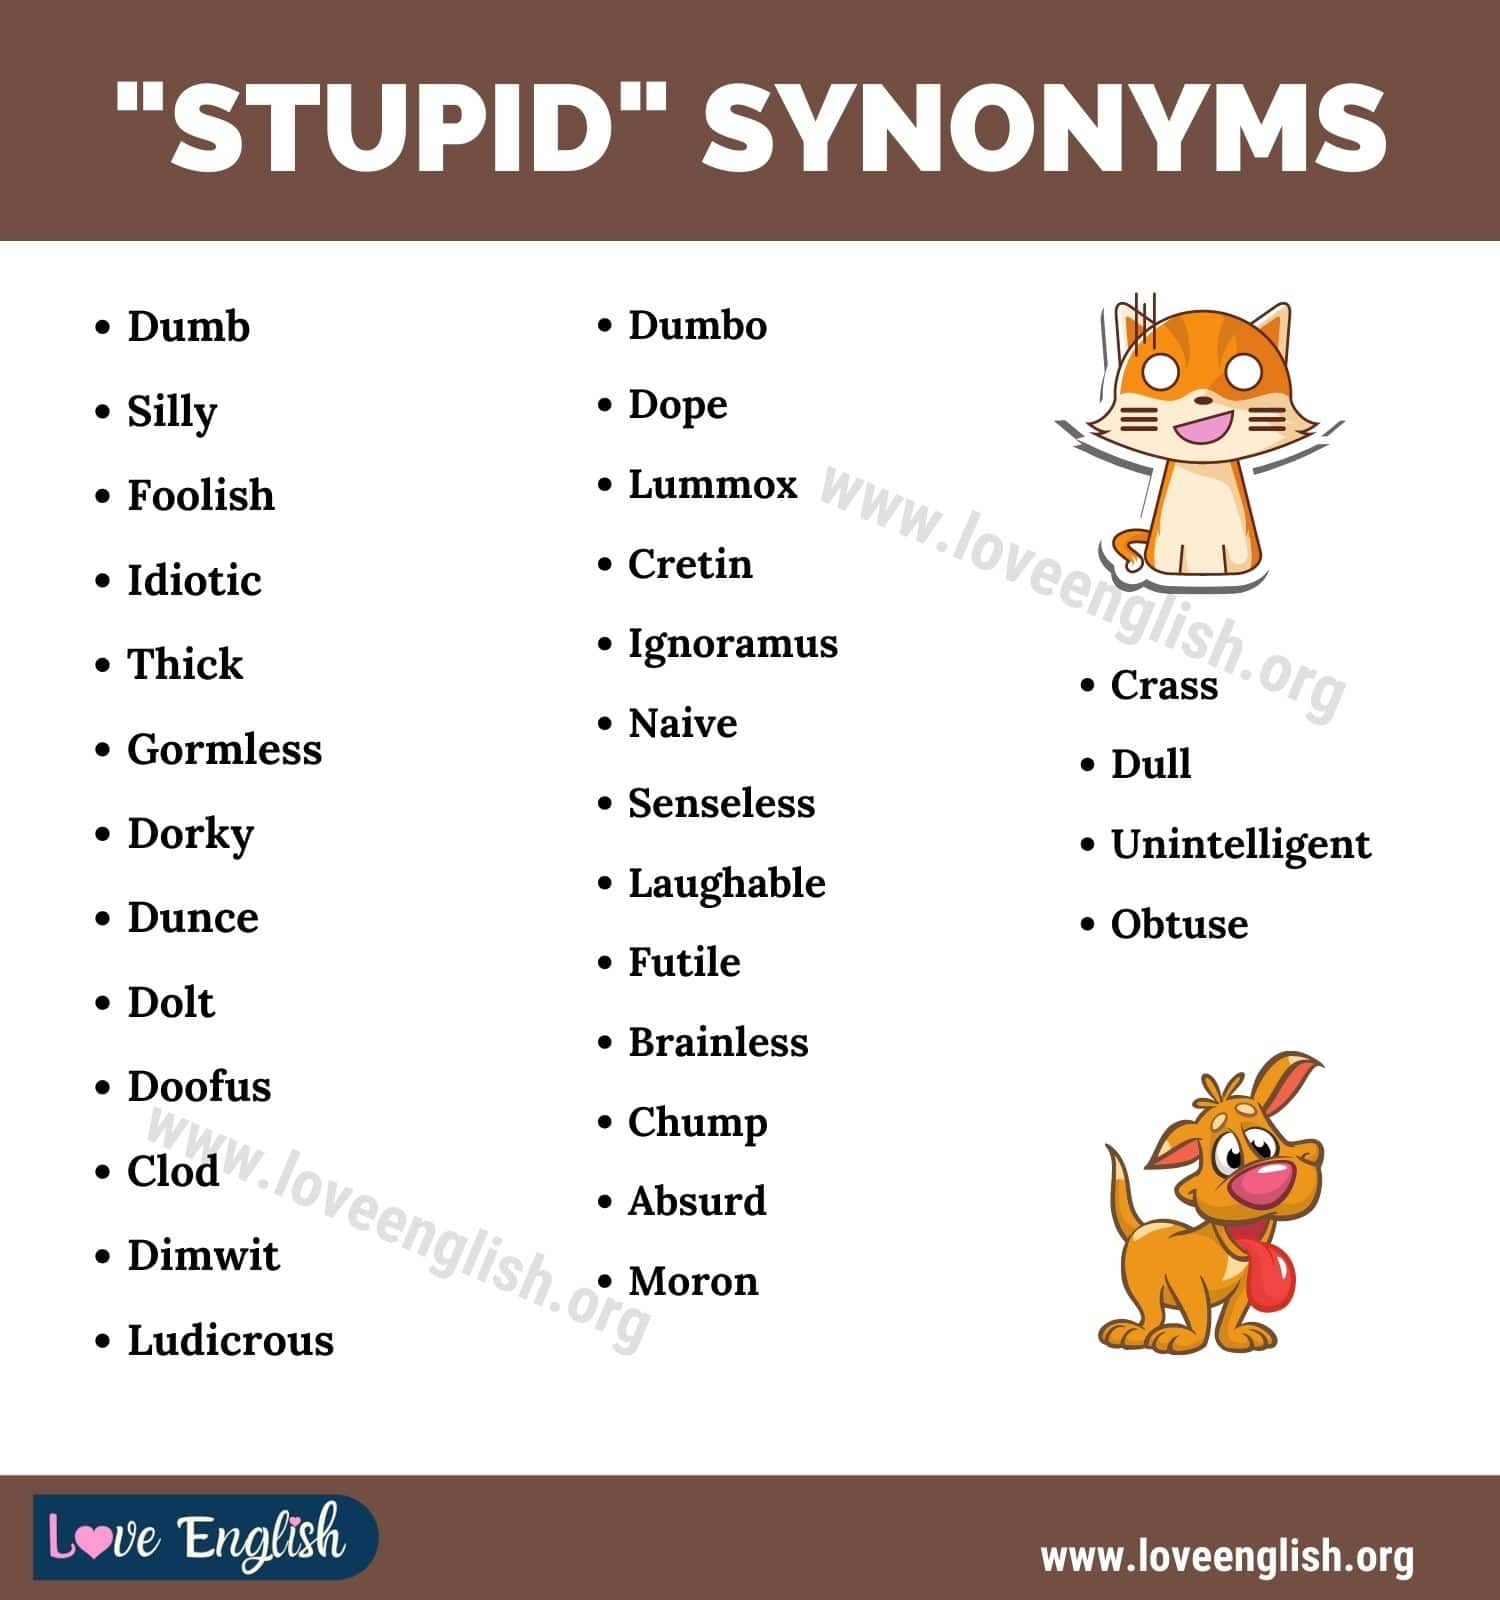 Stupid Synonyms